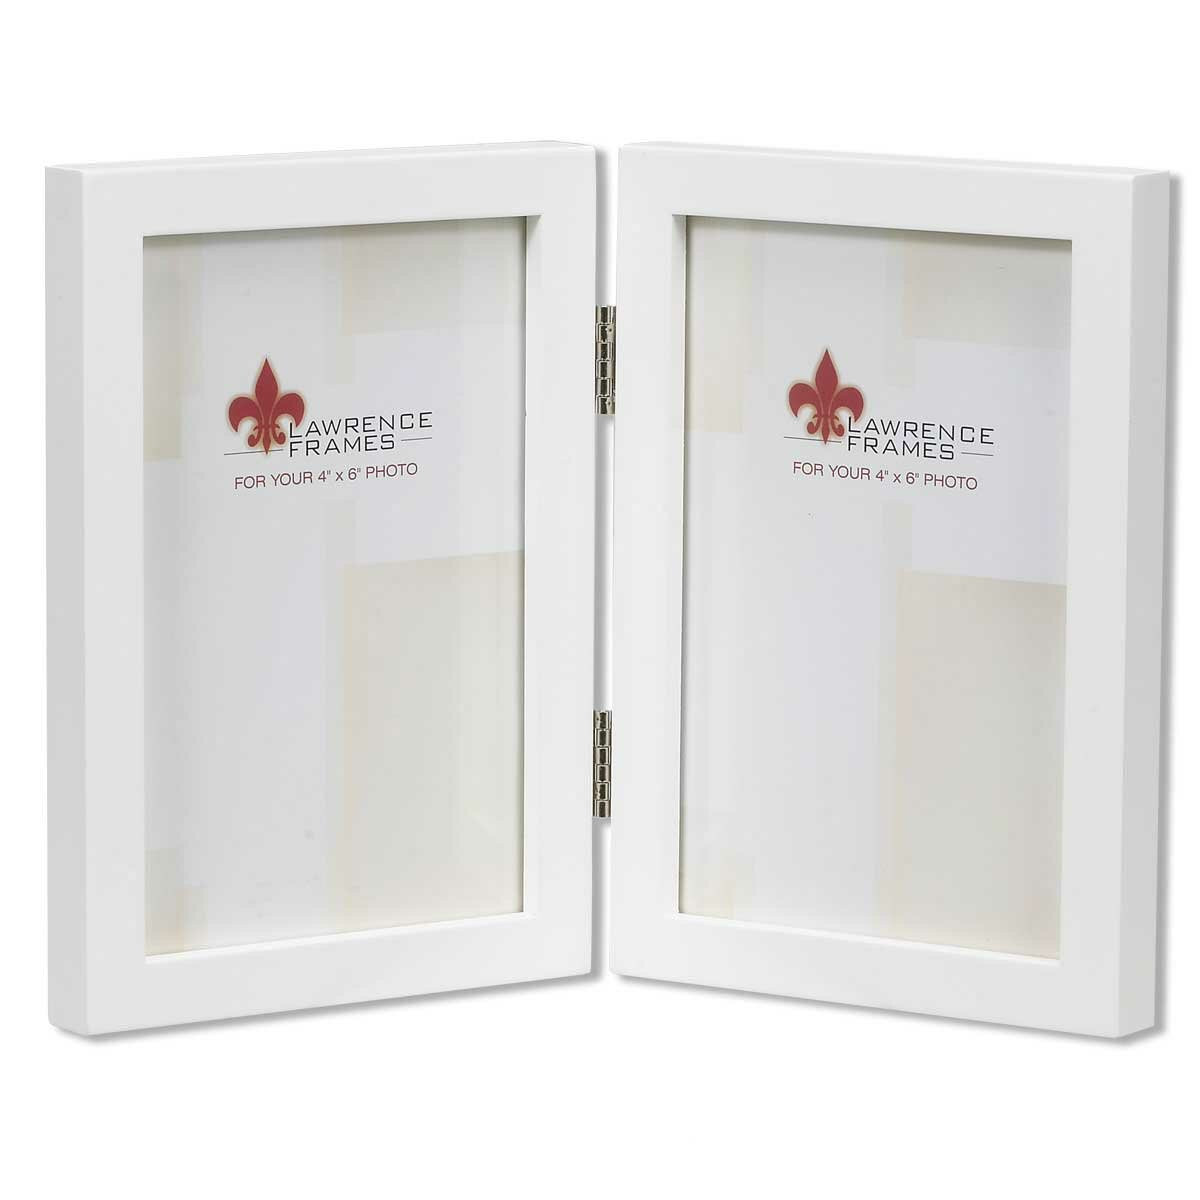 Lawrence Frames Gallery Hinged Double Picture Frame | Wayfair